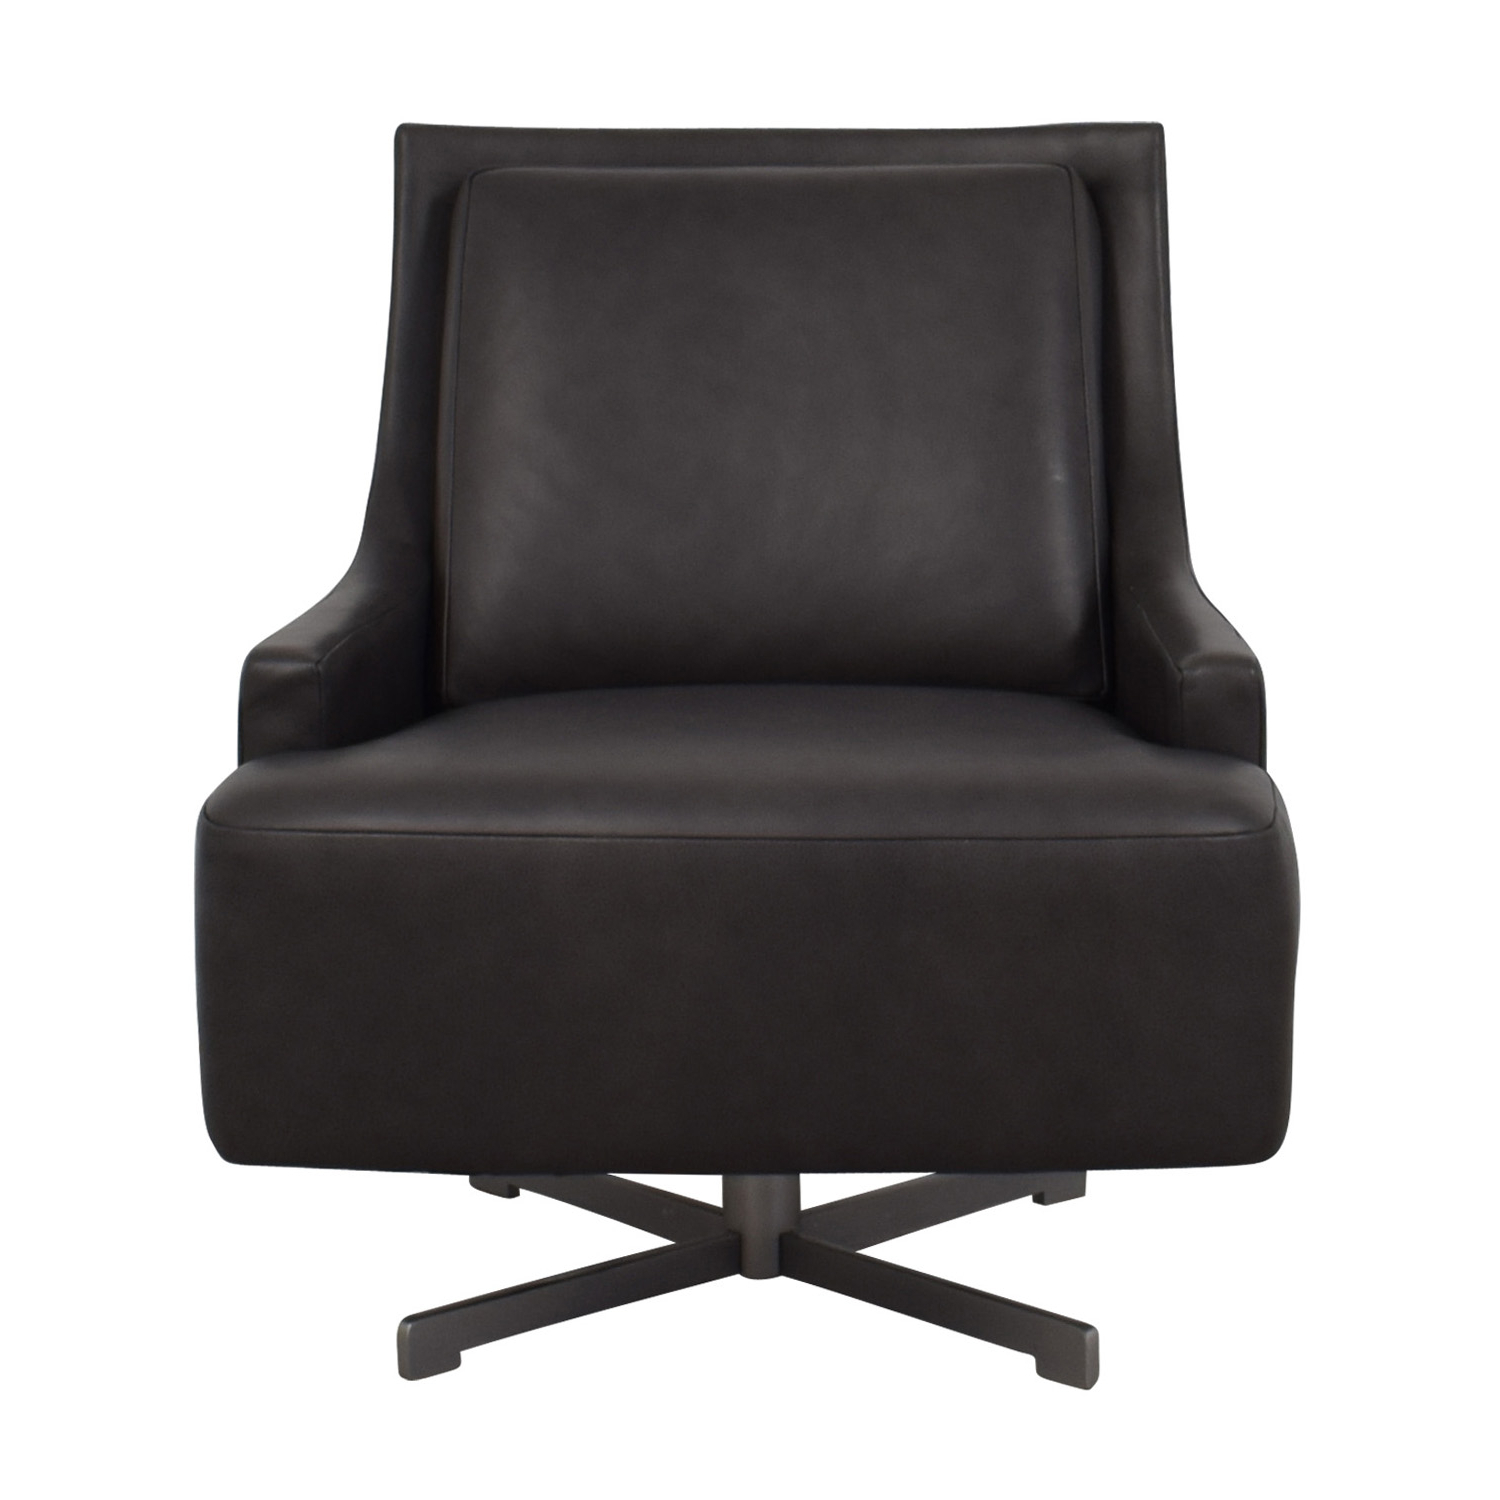 [%86% Off – Hbf Hbf Dark Grey Swivel Lounge Chair / Chairs With Trendy Dark Grey Swivel Chairs|dark Grey Swivel Chairs With 2018 86% Off – Hbf Hbf Dark Grey Swivel Lounge Chair / Chairs|preferred Dark Grey Swivel Chairs Inside 86% Off – Hbf Hbf Dark Grey Swivel Lounge Chair / Chairs|widely Used 86% Off – Hbf Hbf Dark Grey Swivel Lounge Chair / Chairs For Dark Grey Swivel Chairs%] (View 5 of 20)